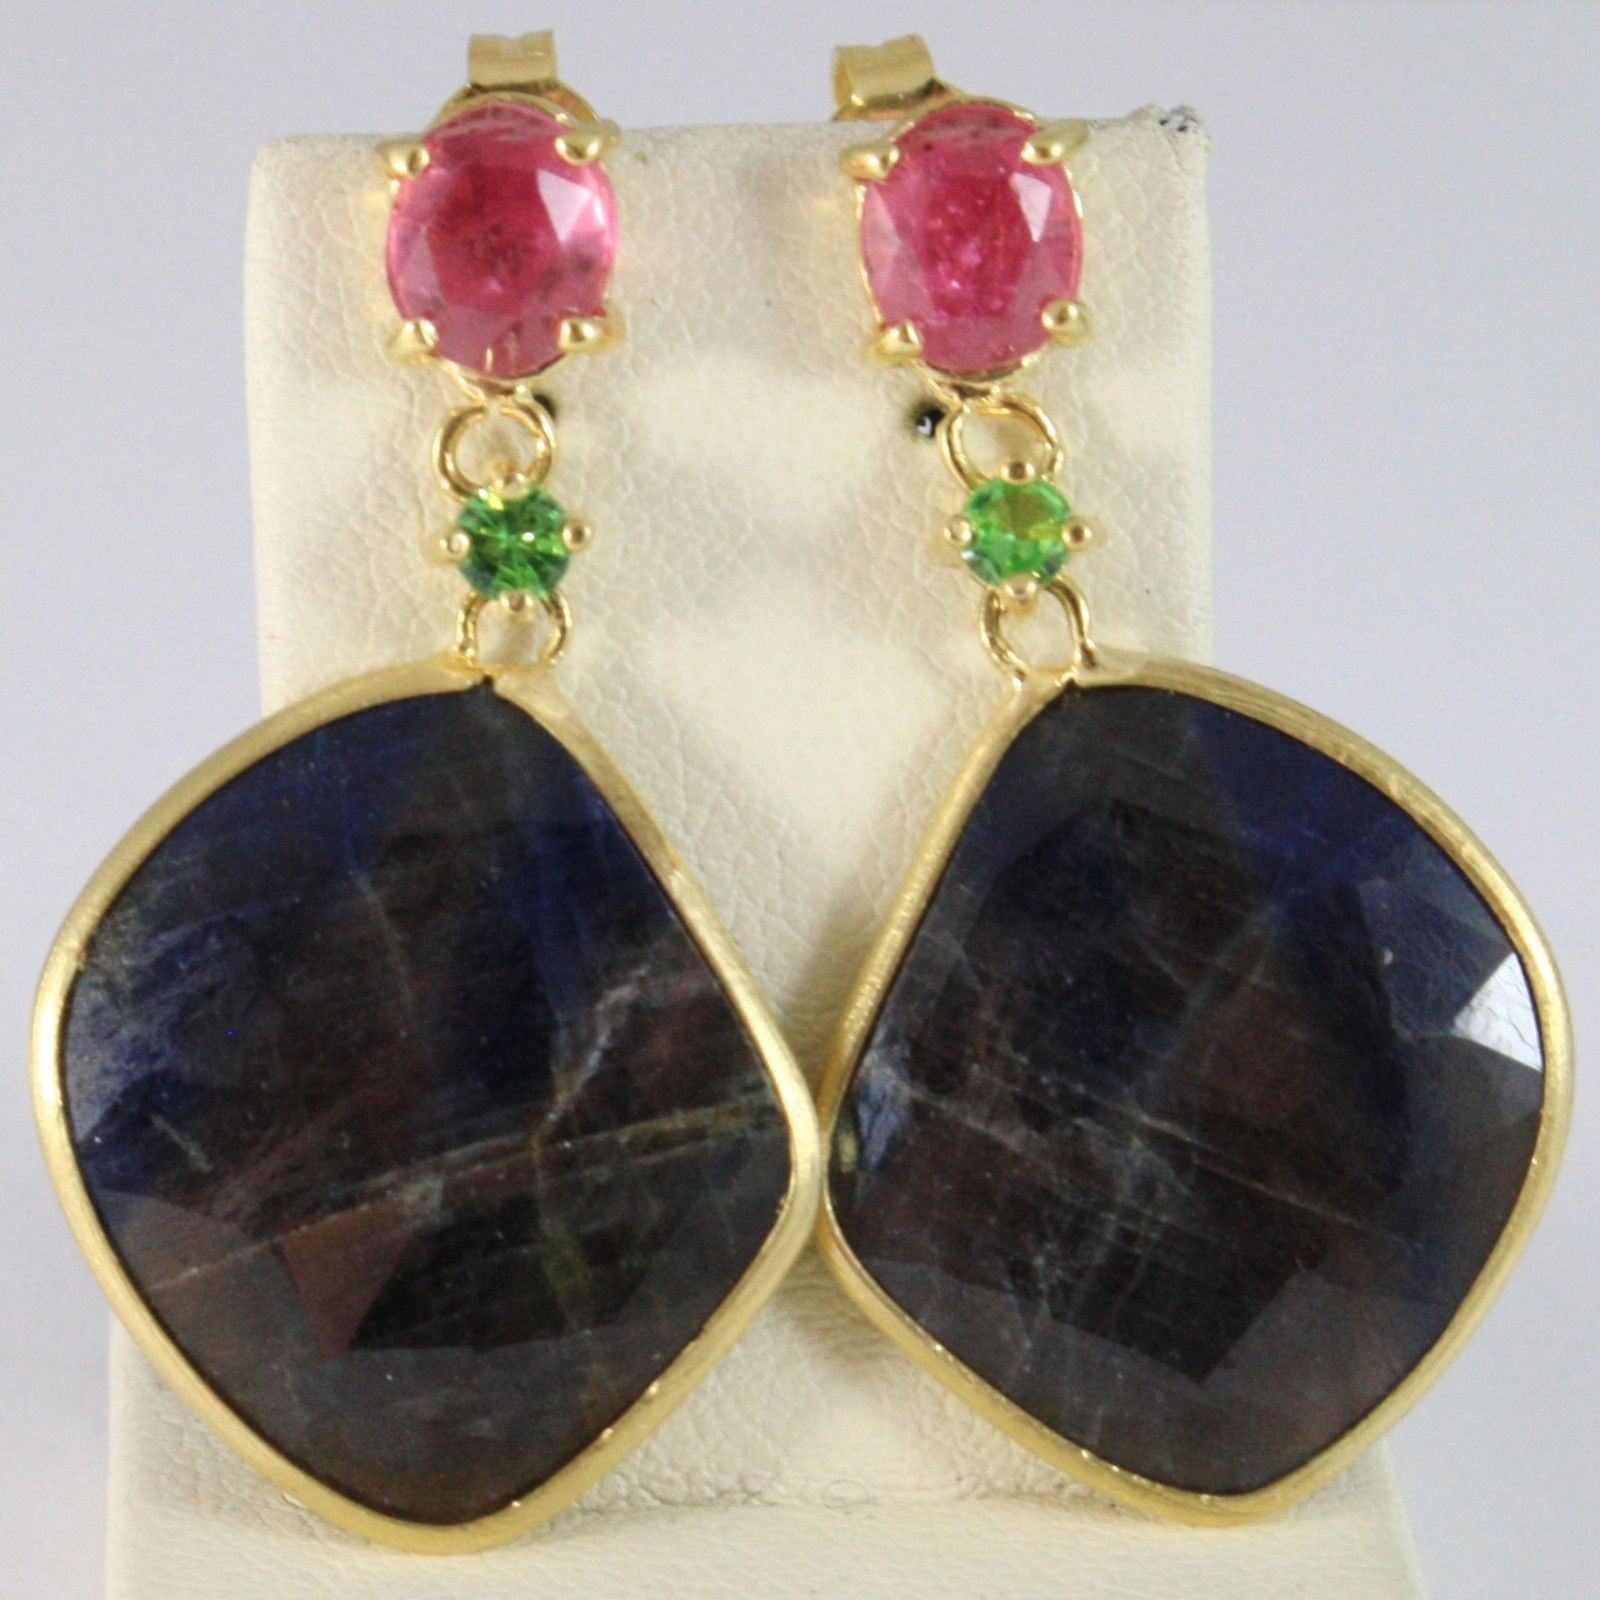 YELLOW GOLD EARRINGS 375 9K SAPPHIRES BLUE DROP, SAPPHIRES PINK OVAL AND PERIDOT